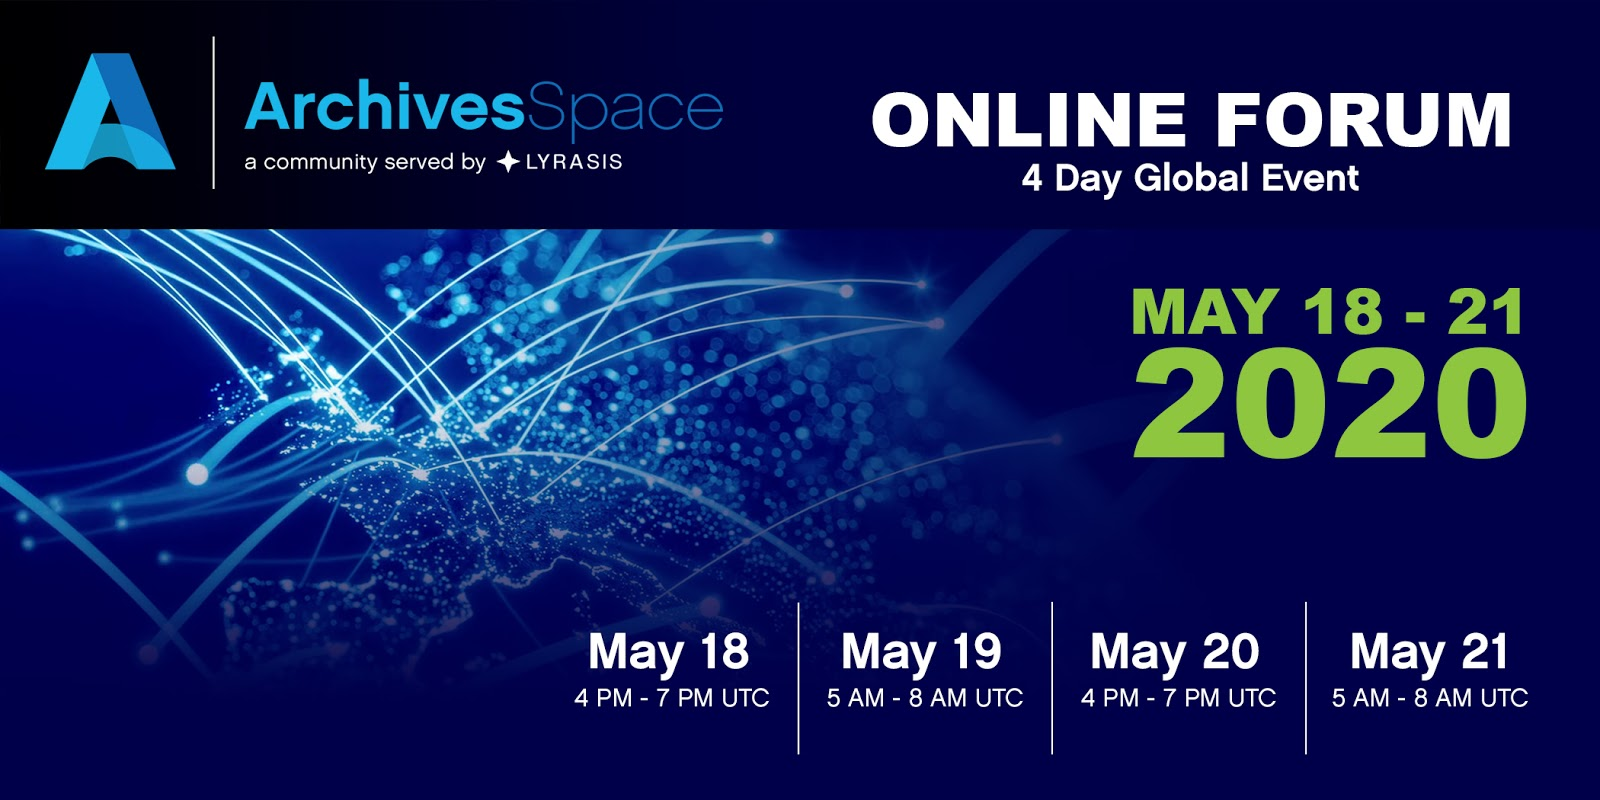 Second Annual ArchivesSpace Online Forum